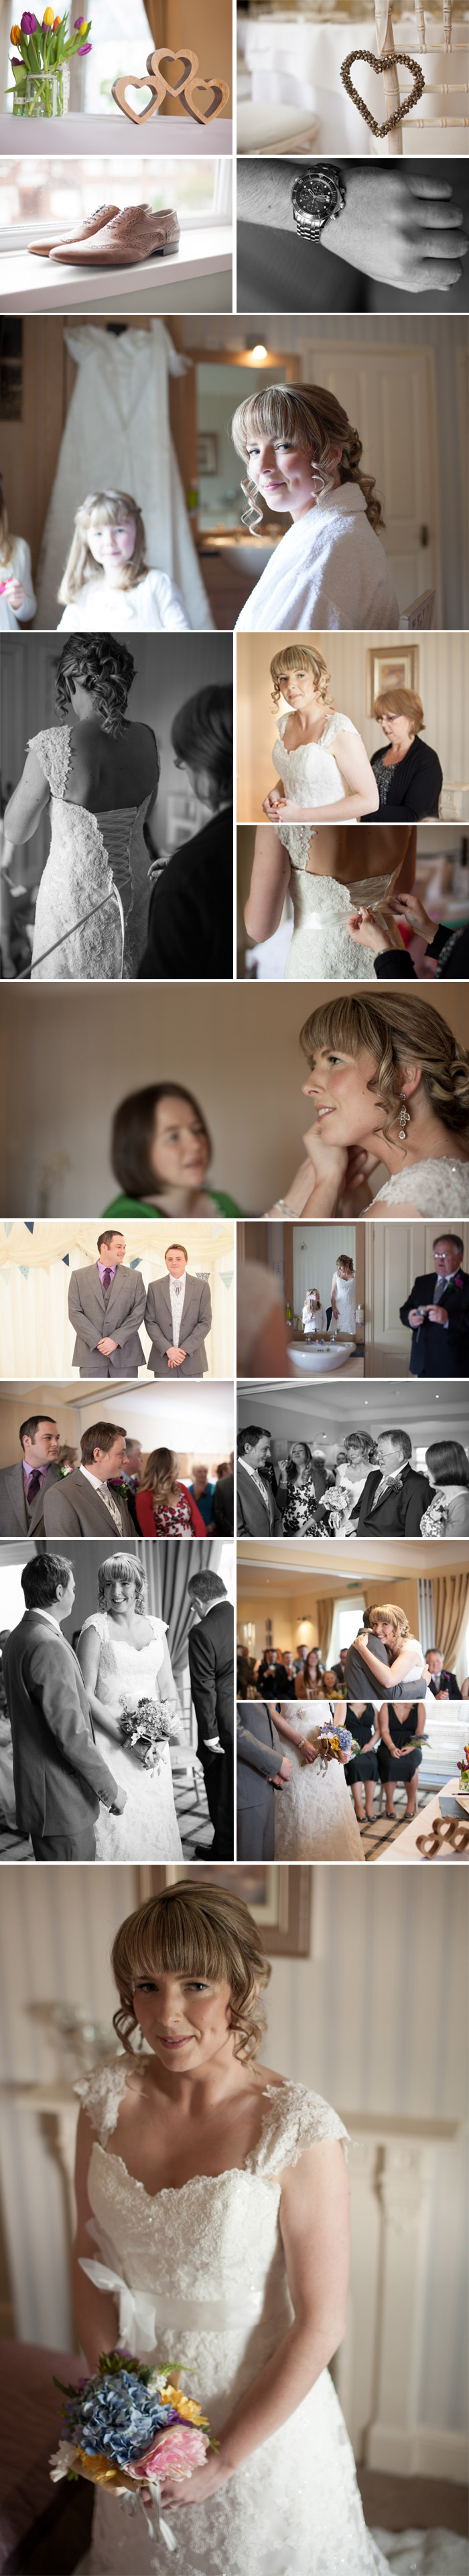 Pictures from Amy & Marks Wedding at Peel Hey guest house wedding venue in Frankby on the Wirral.